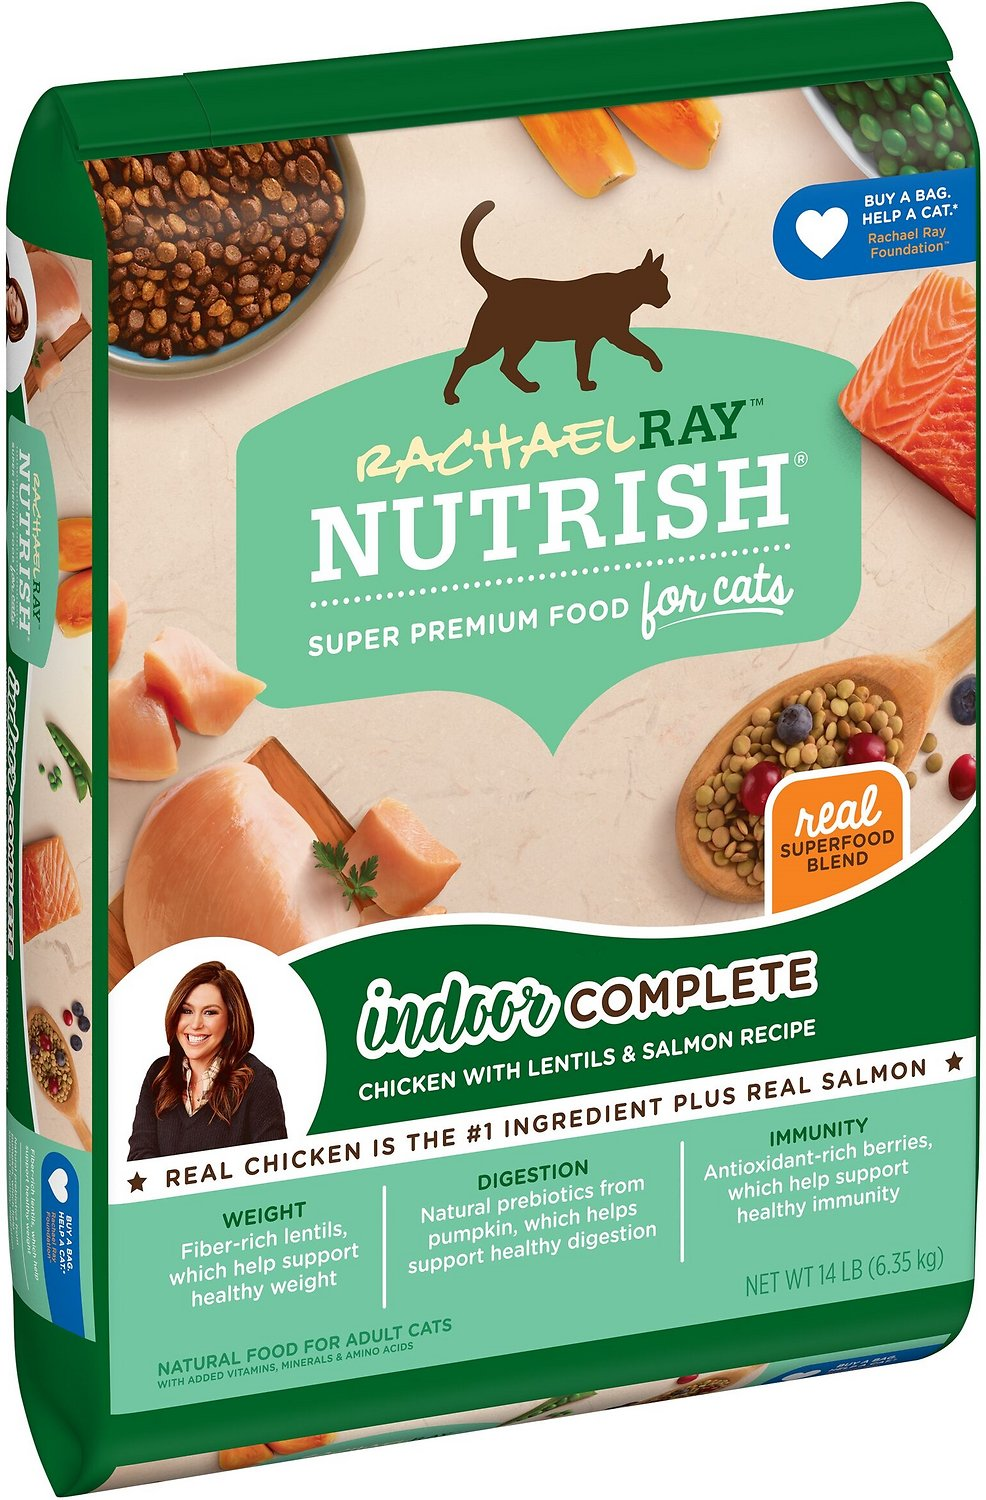 Rachael ray nutrish indoor complete chicken with lentils salmon video forumfinder Gallery